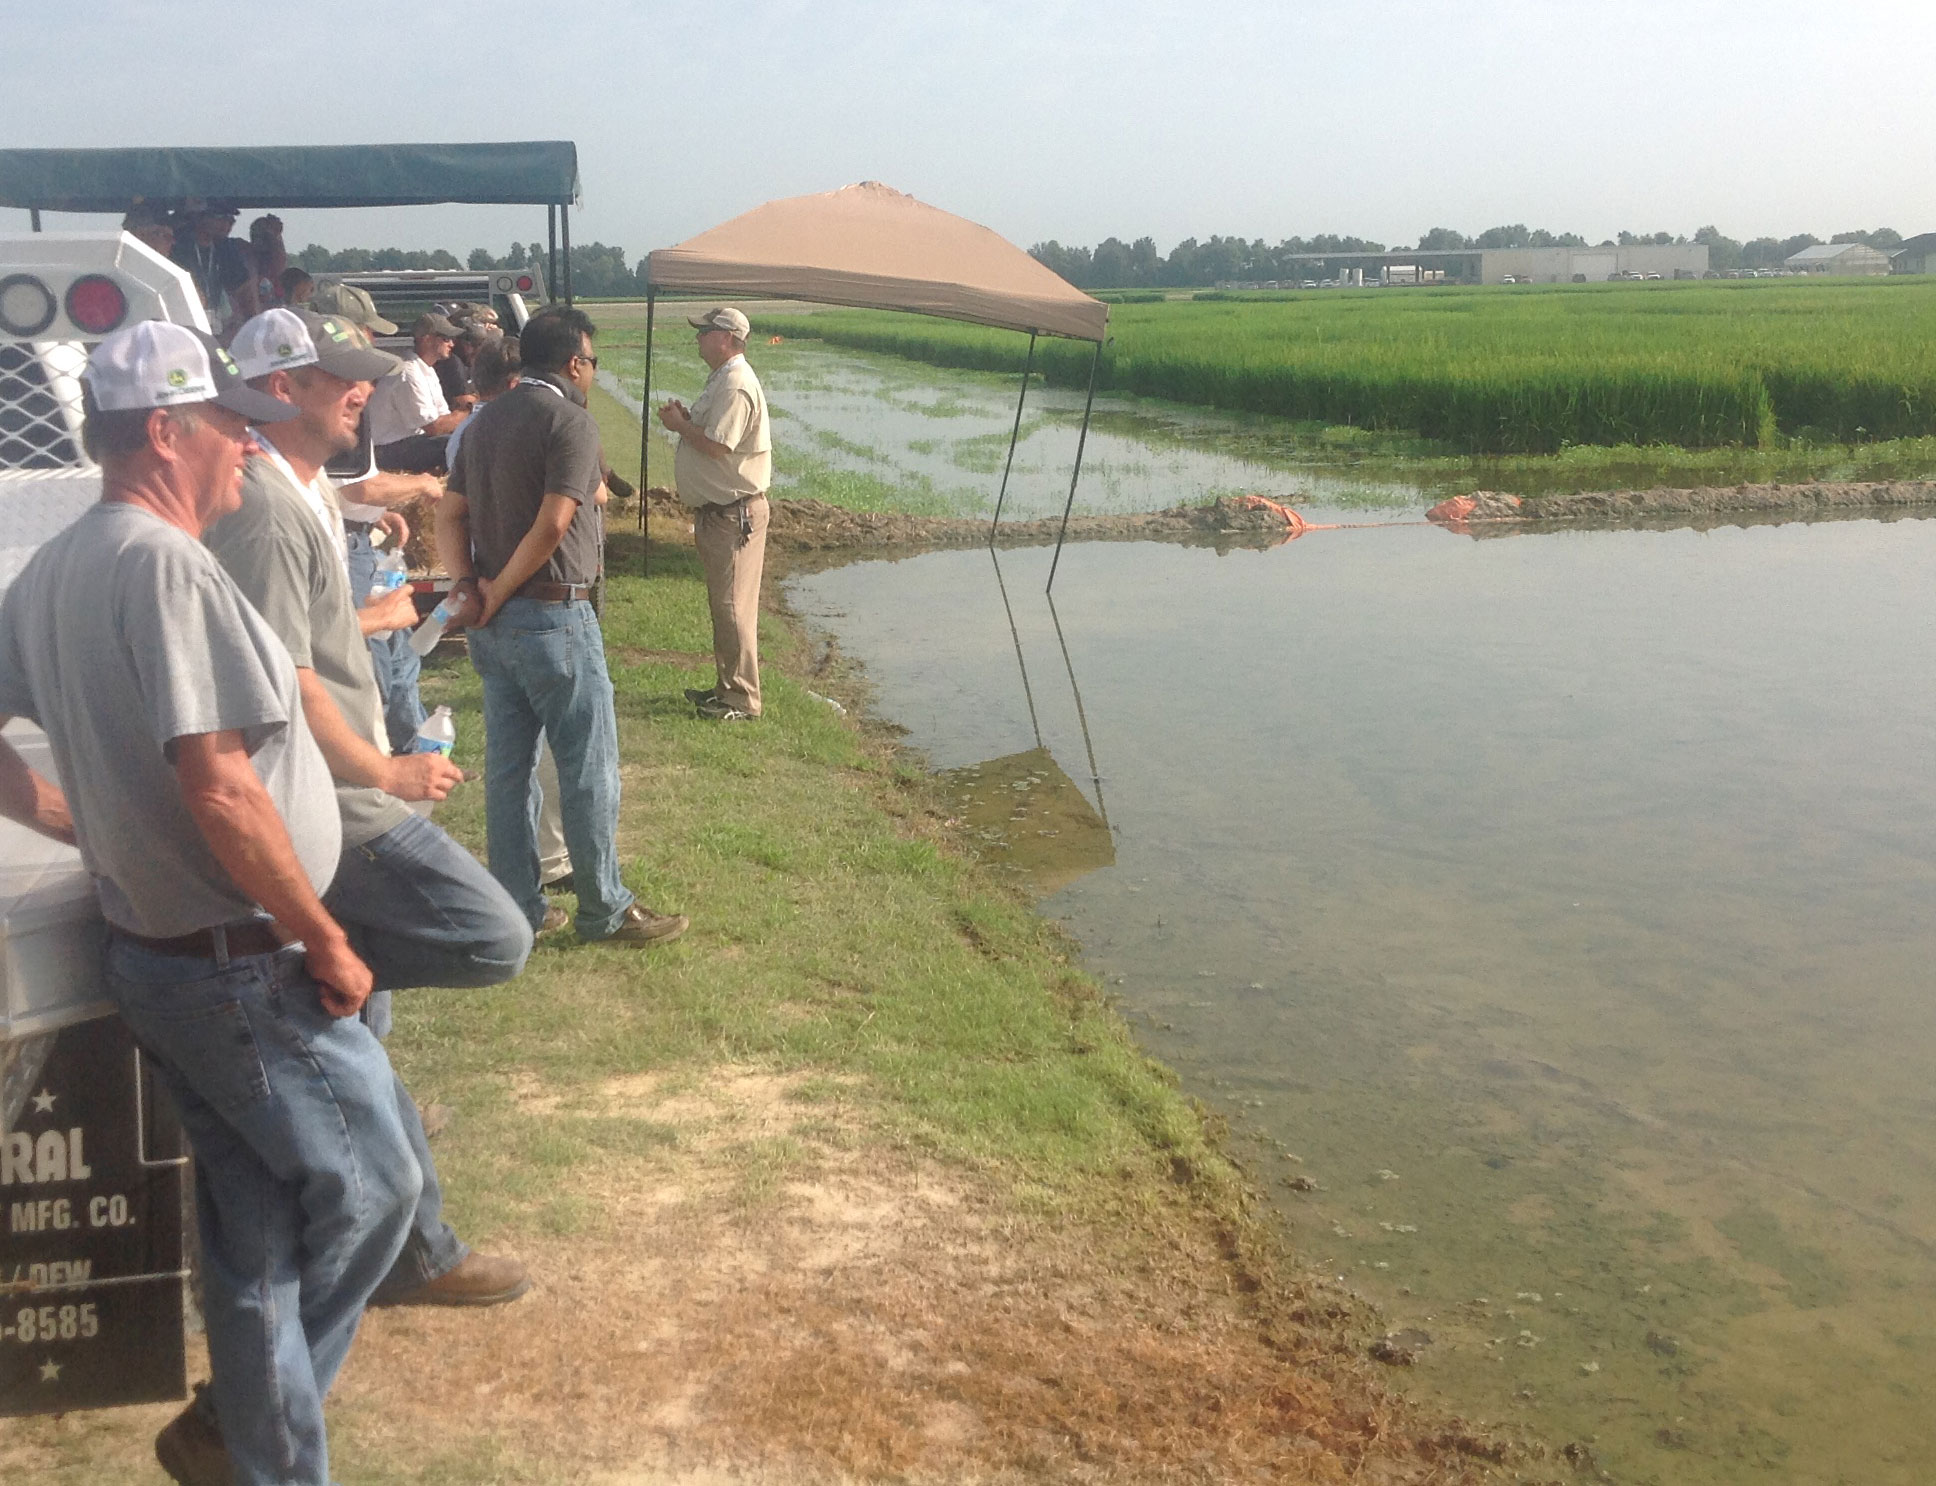 RiceTec-AR-Field-Day, attendees stand alongside research plots